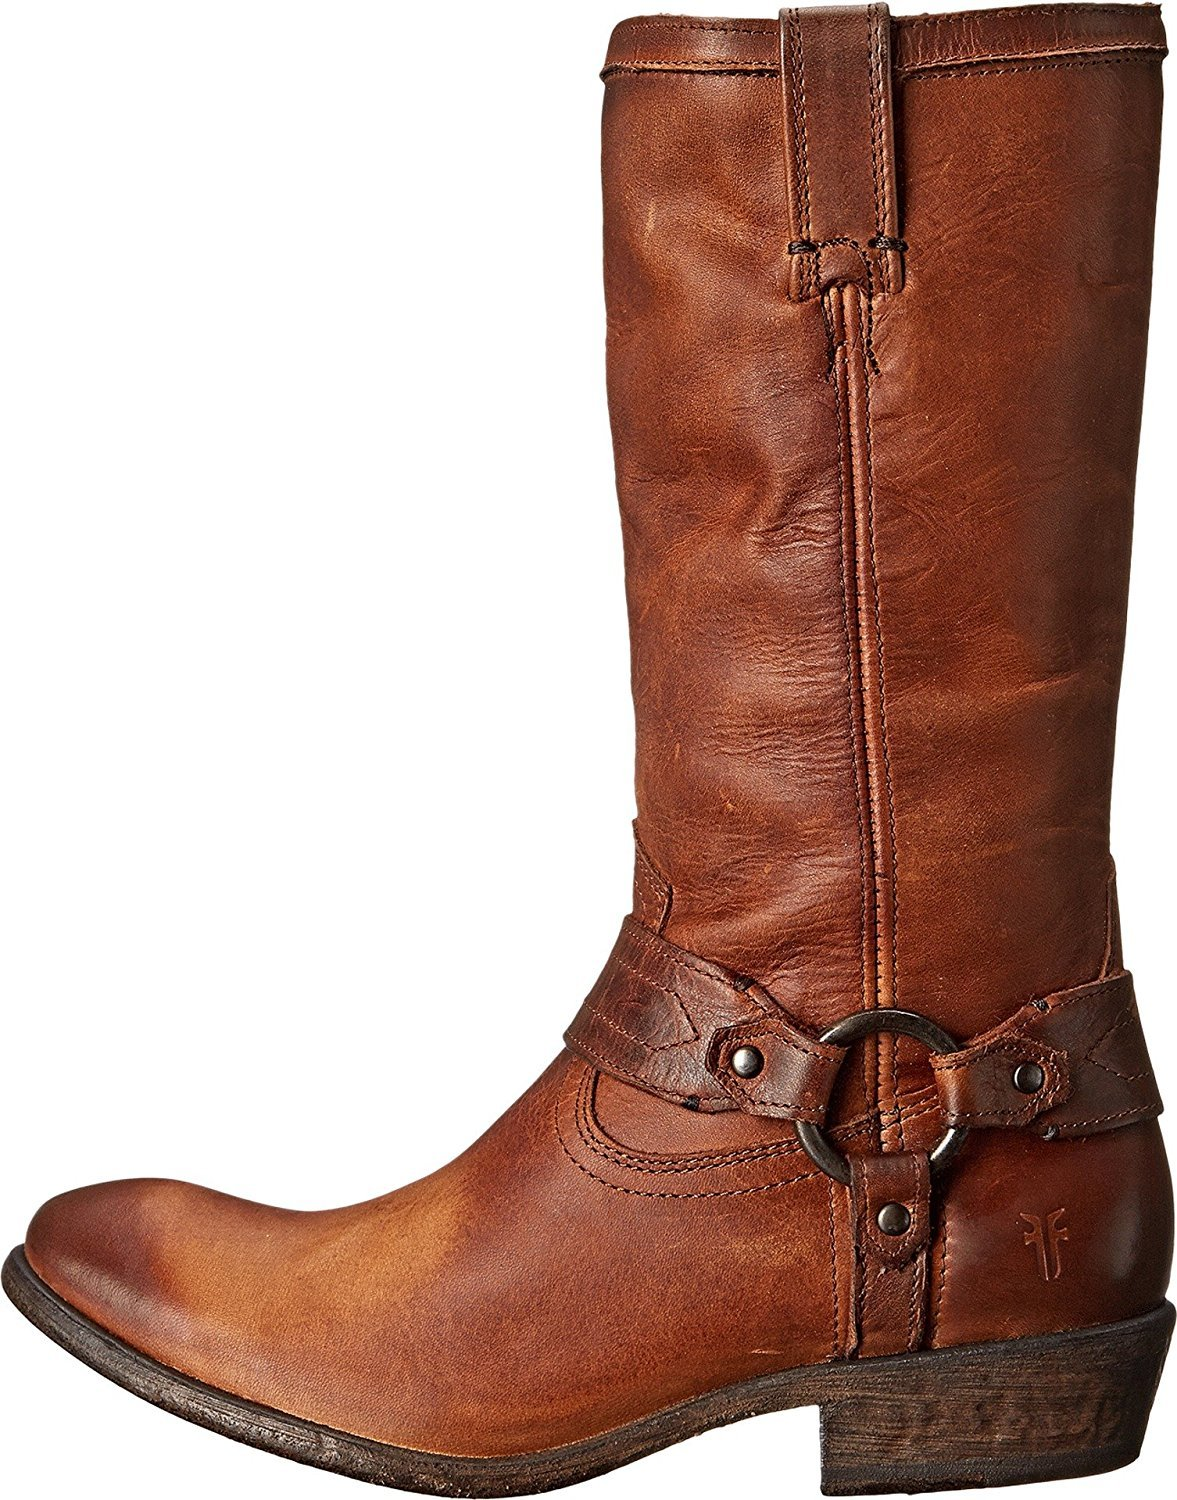 FRYE Women's Carson Harness Washed B00SSQIEZG 8.5 B(M) US|Cognac Washed Harness Antique Pull Up 0ef279